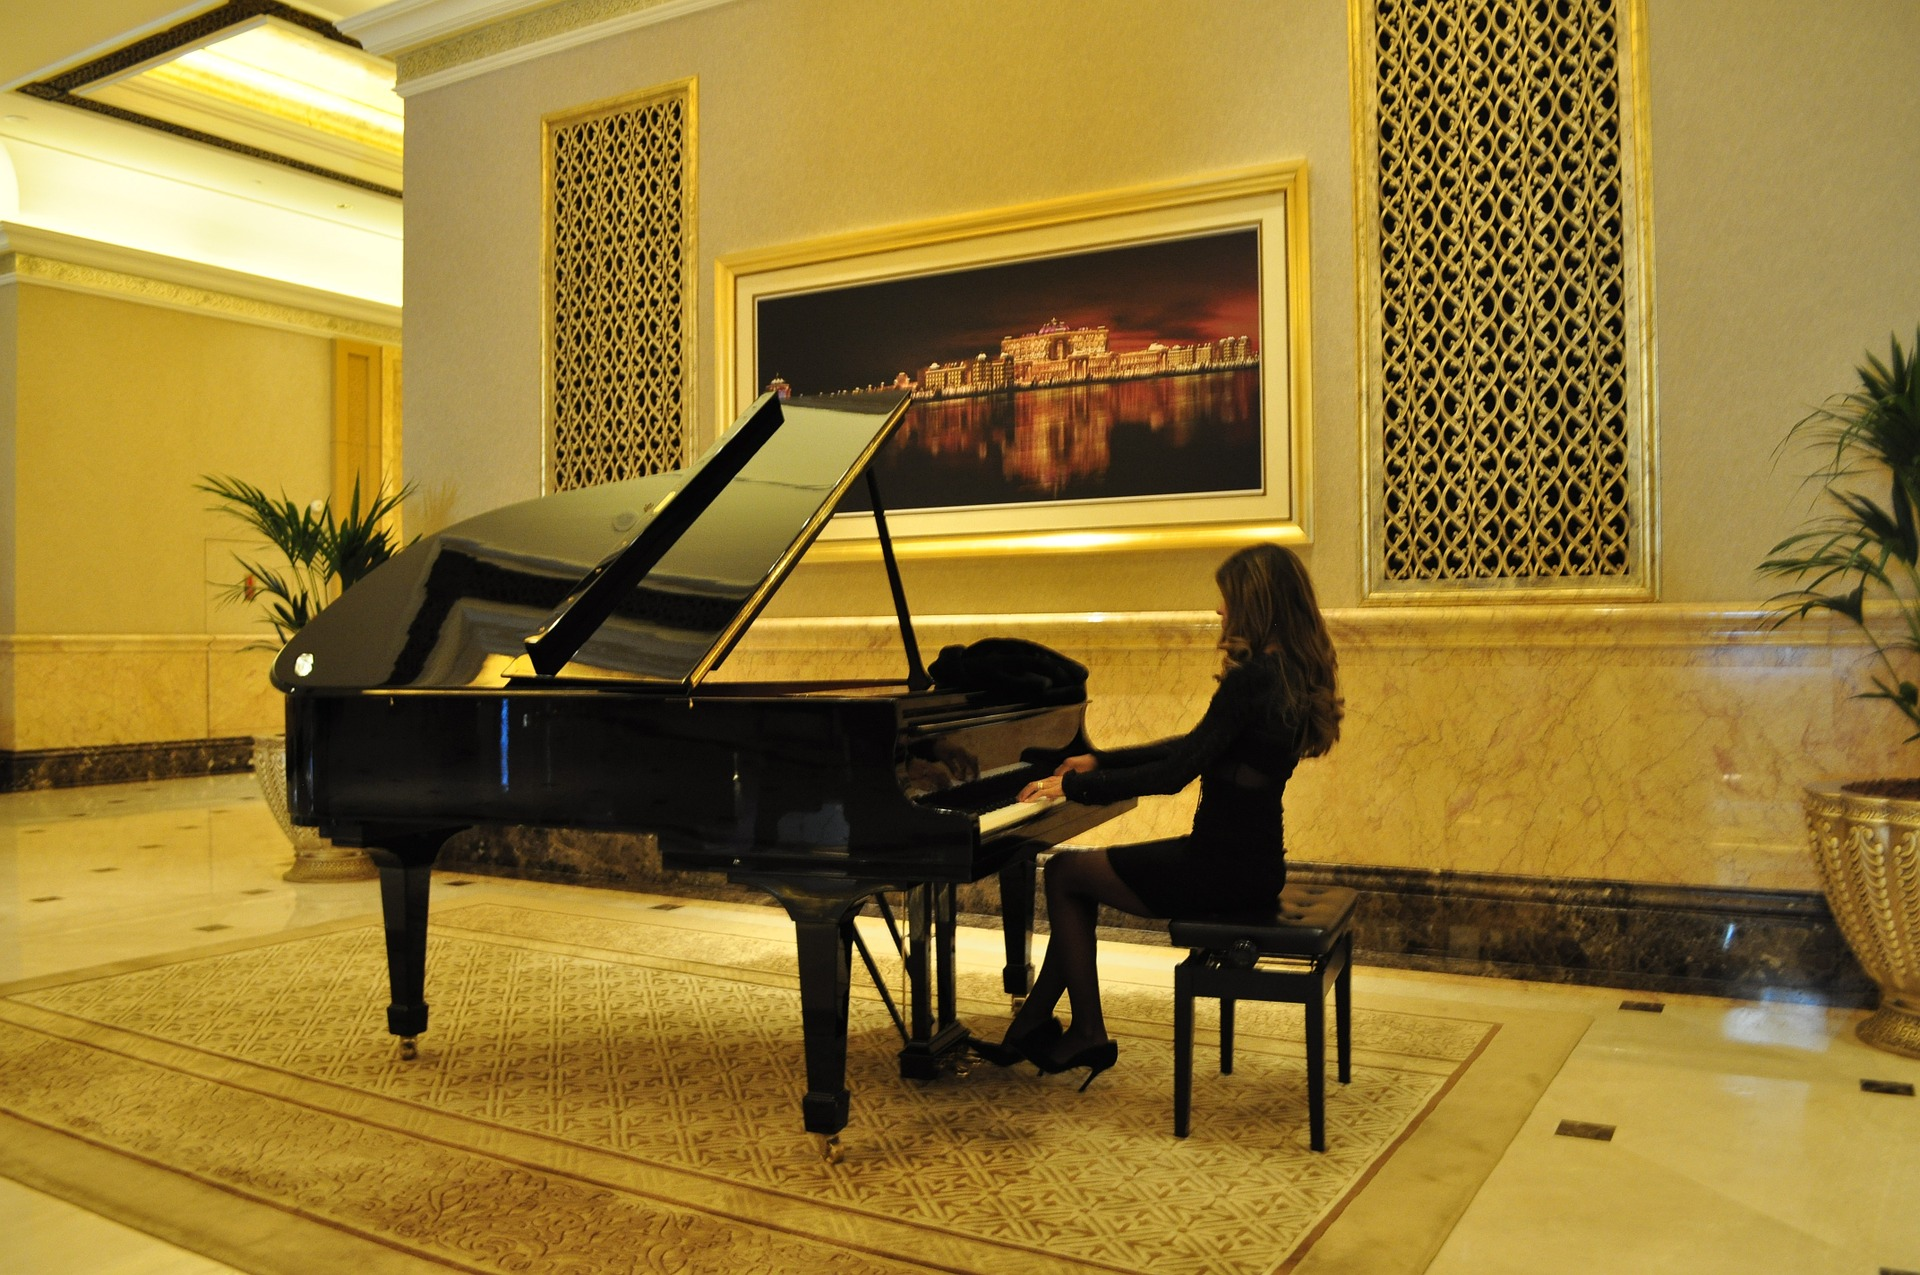 emirates-palace-hotel-1118957_1920